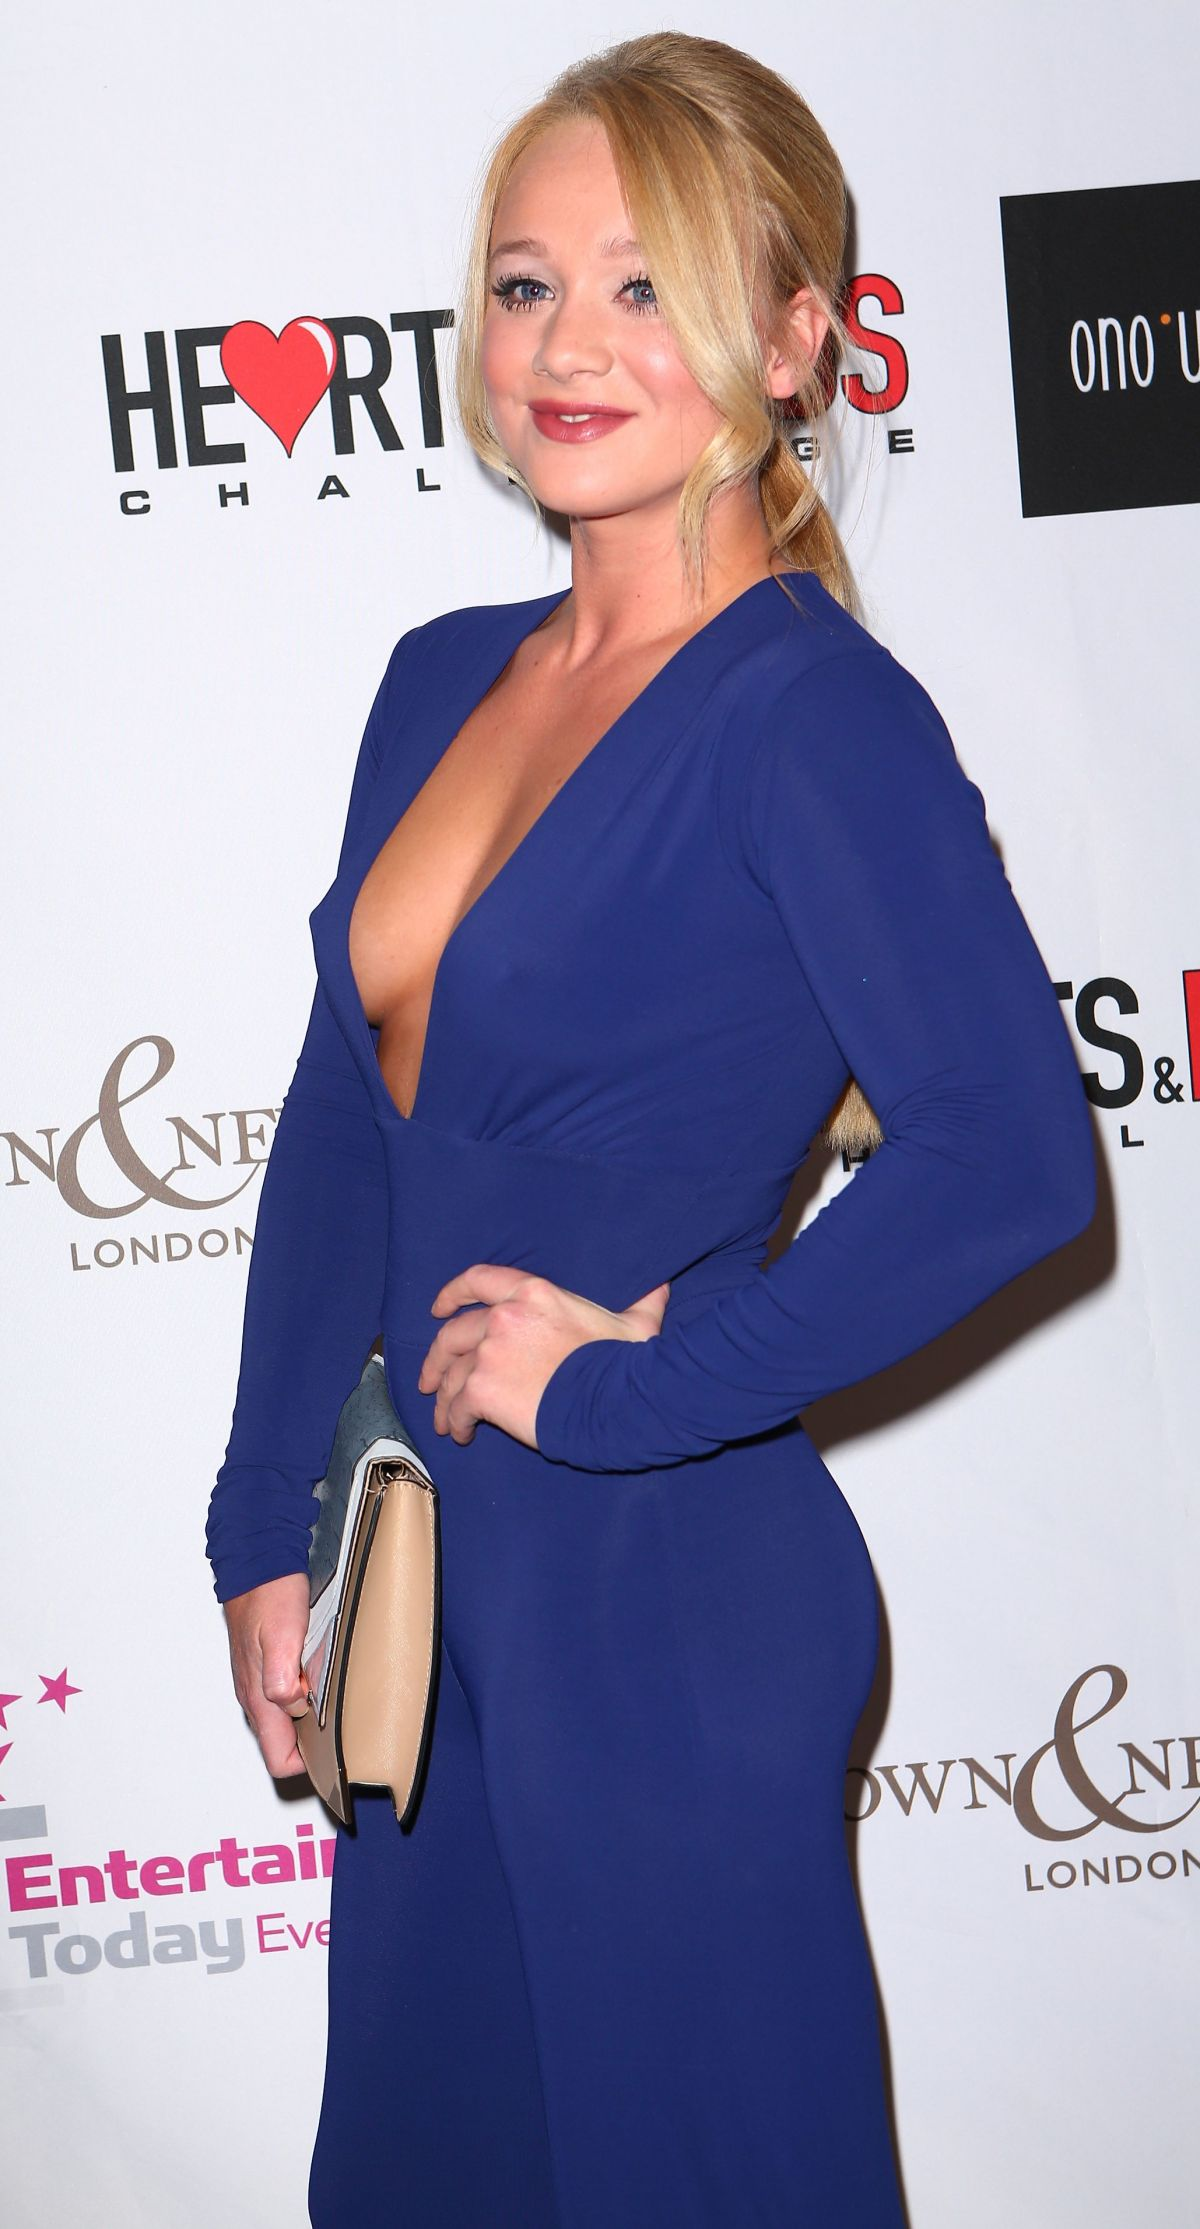 KIRSTY-LEIGH PORTER at Hearts & Minds Studio 54 Ball